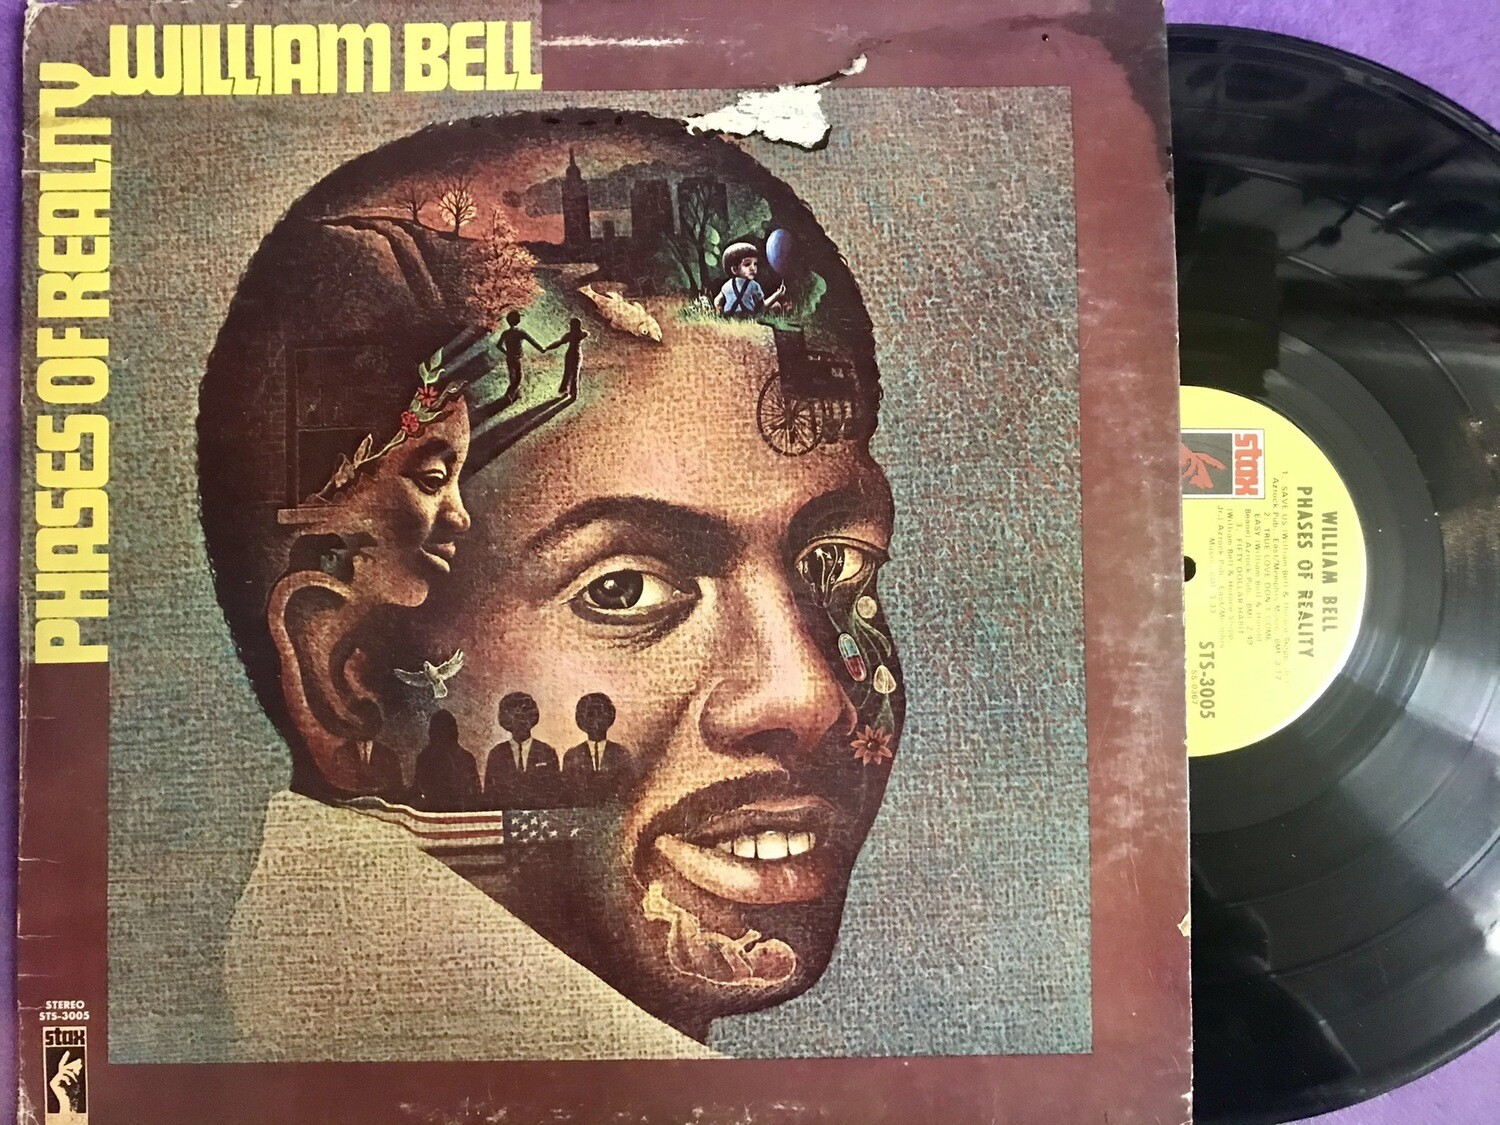 William Bell Phases of Reality 1972 Stax.